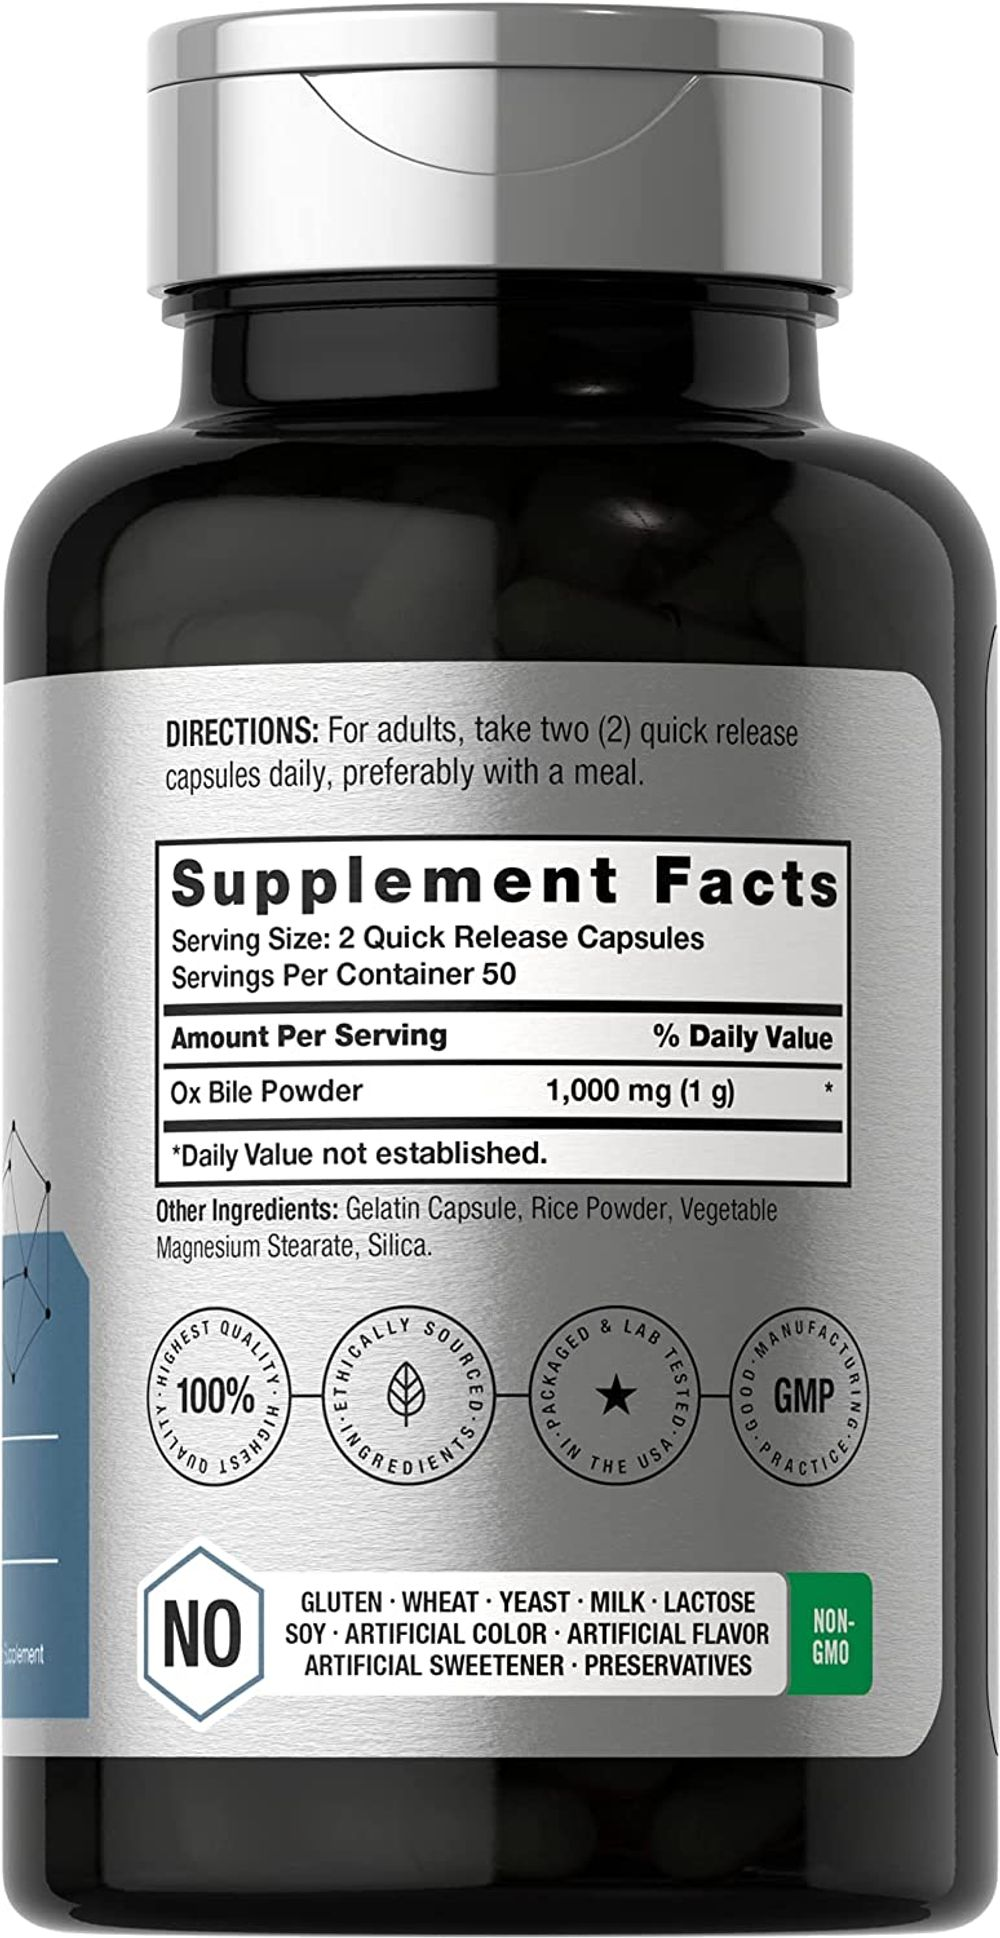 Horbaach Ox Bile 1000 mg 100 Capsules   Non-GMO & Gluten Free   Digestive Enzymes Supplement, Purified Bile Salts for Gallbladder